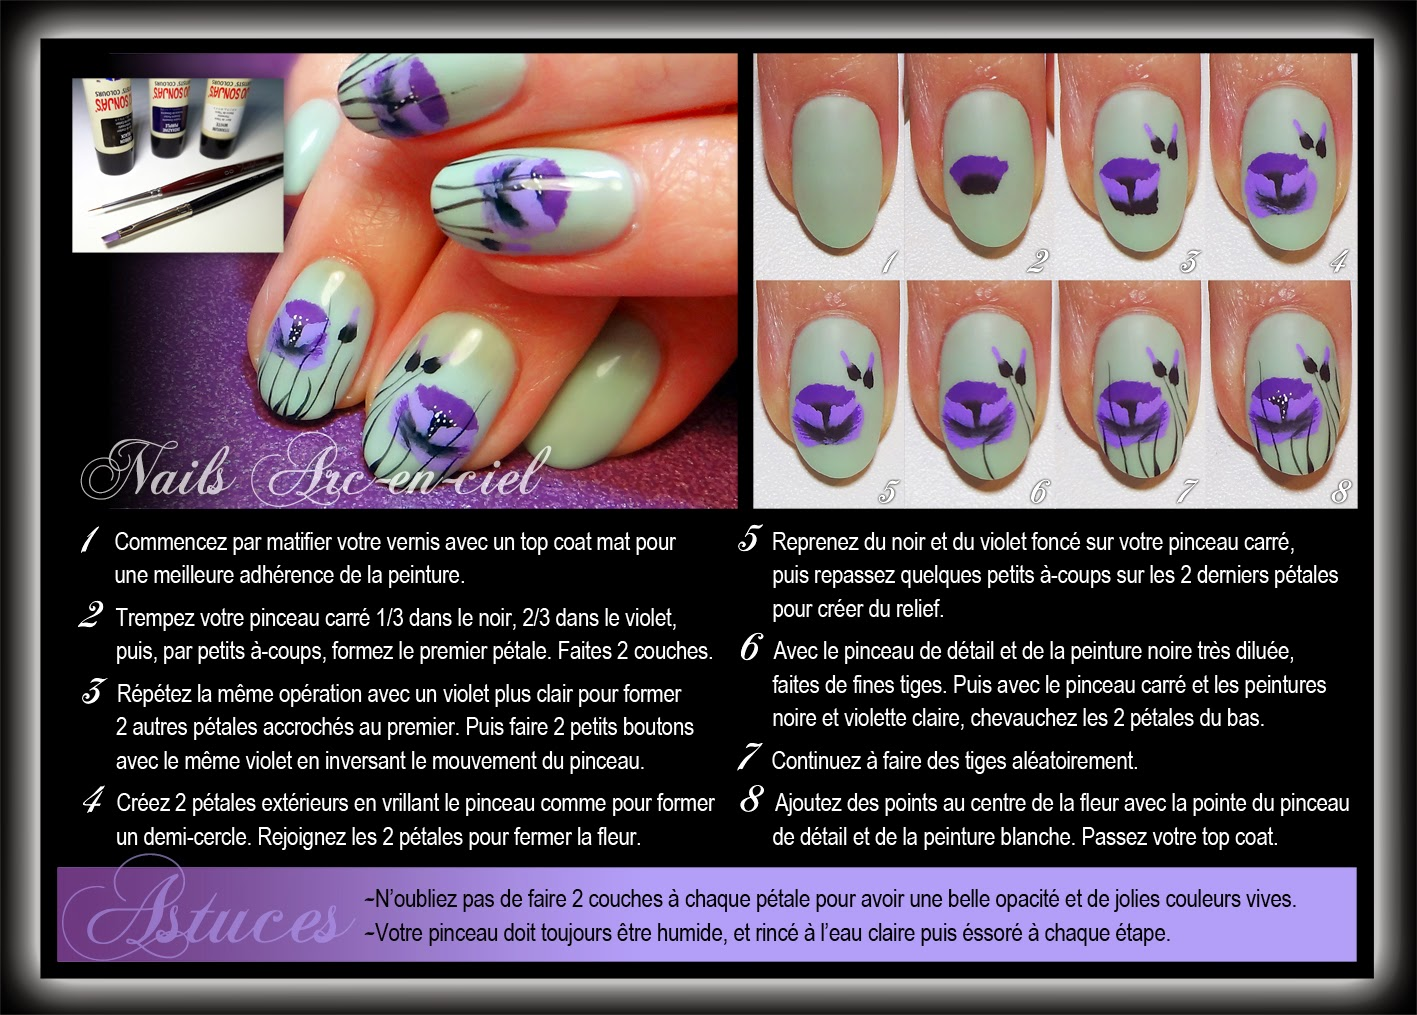 http://nails-arcenciel.blogspot.fr/2015/02/tutoriel-fleurs-de-pavots-one-stroke.html?spref=fb